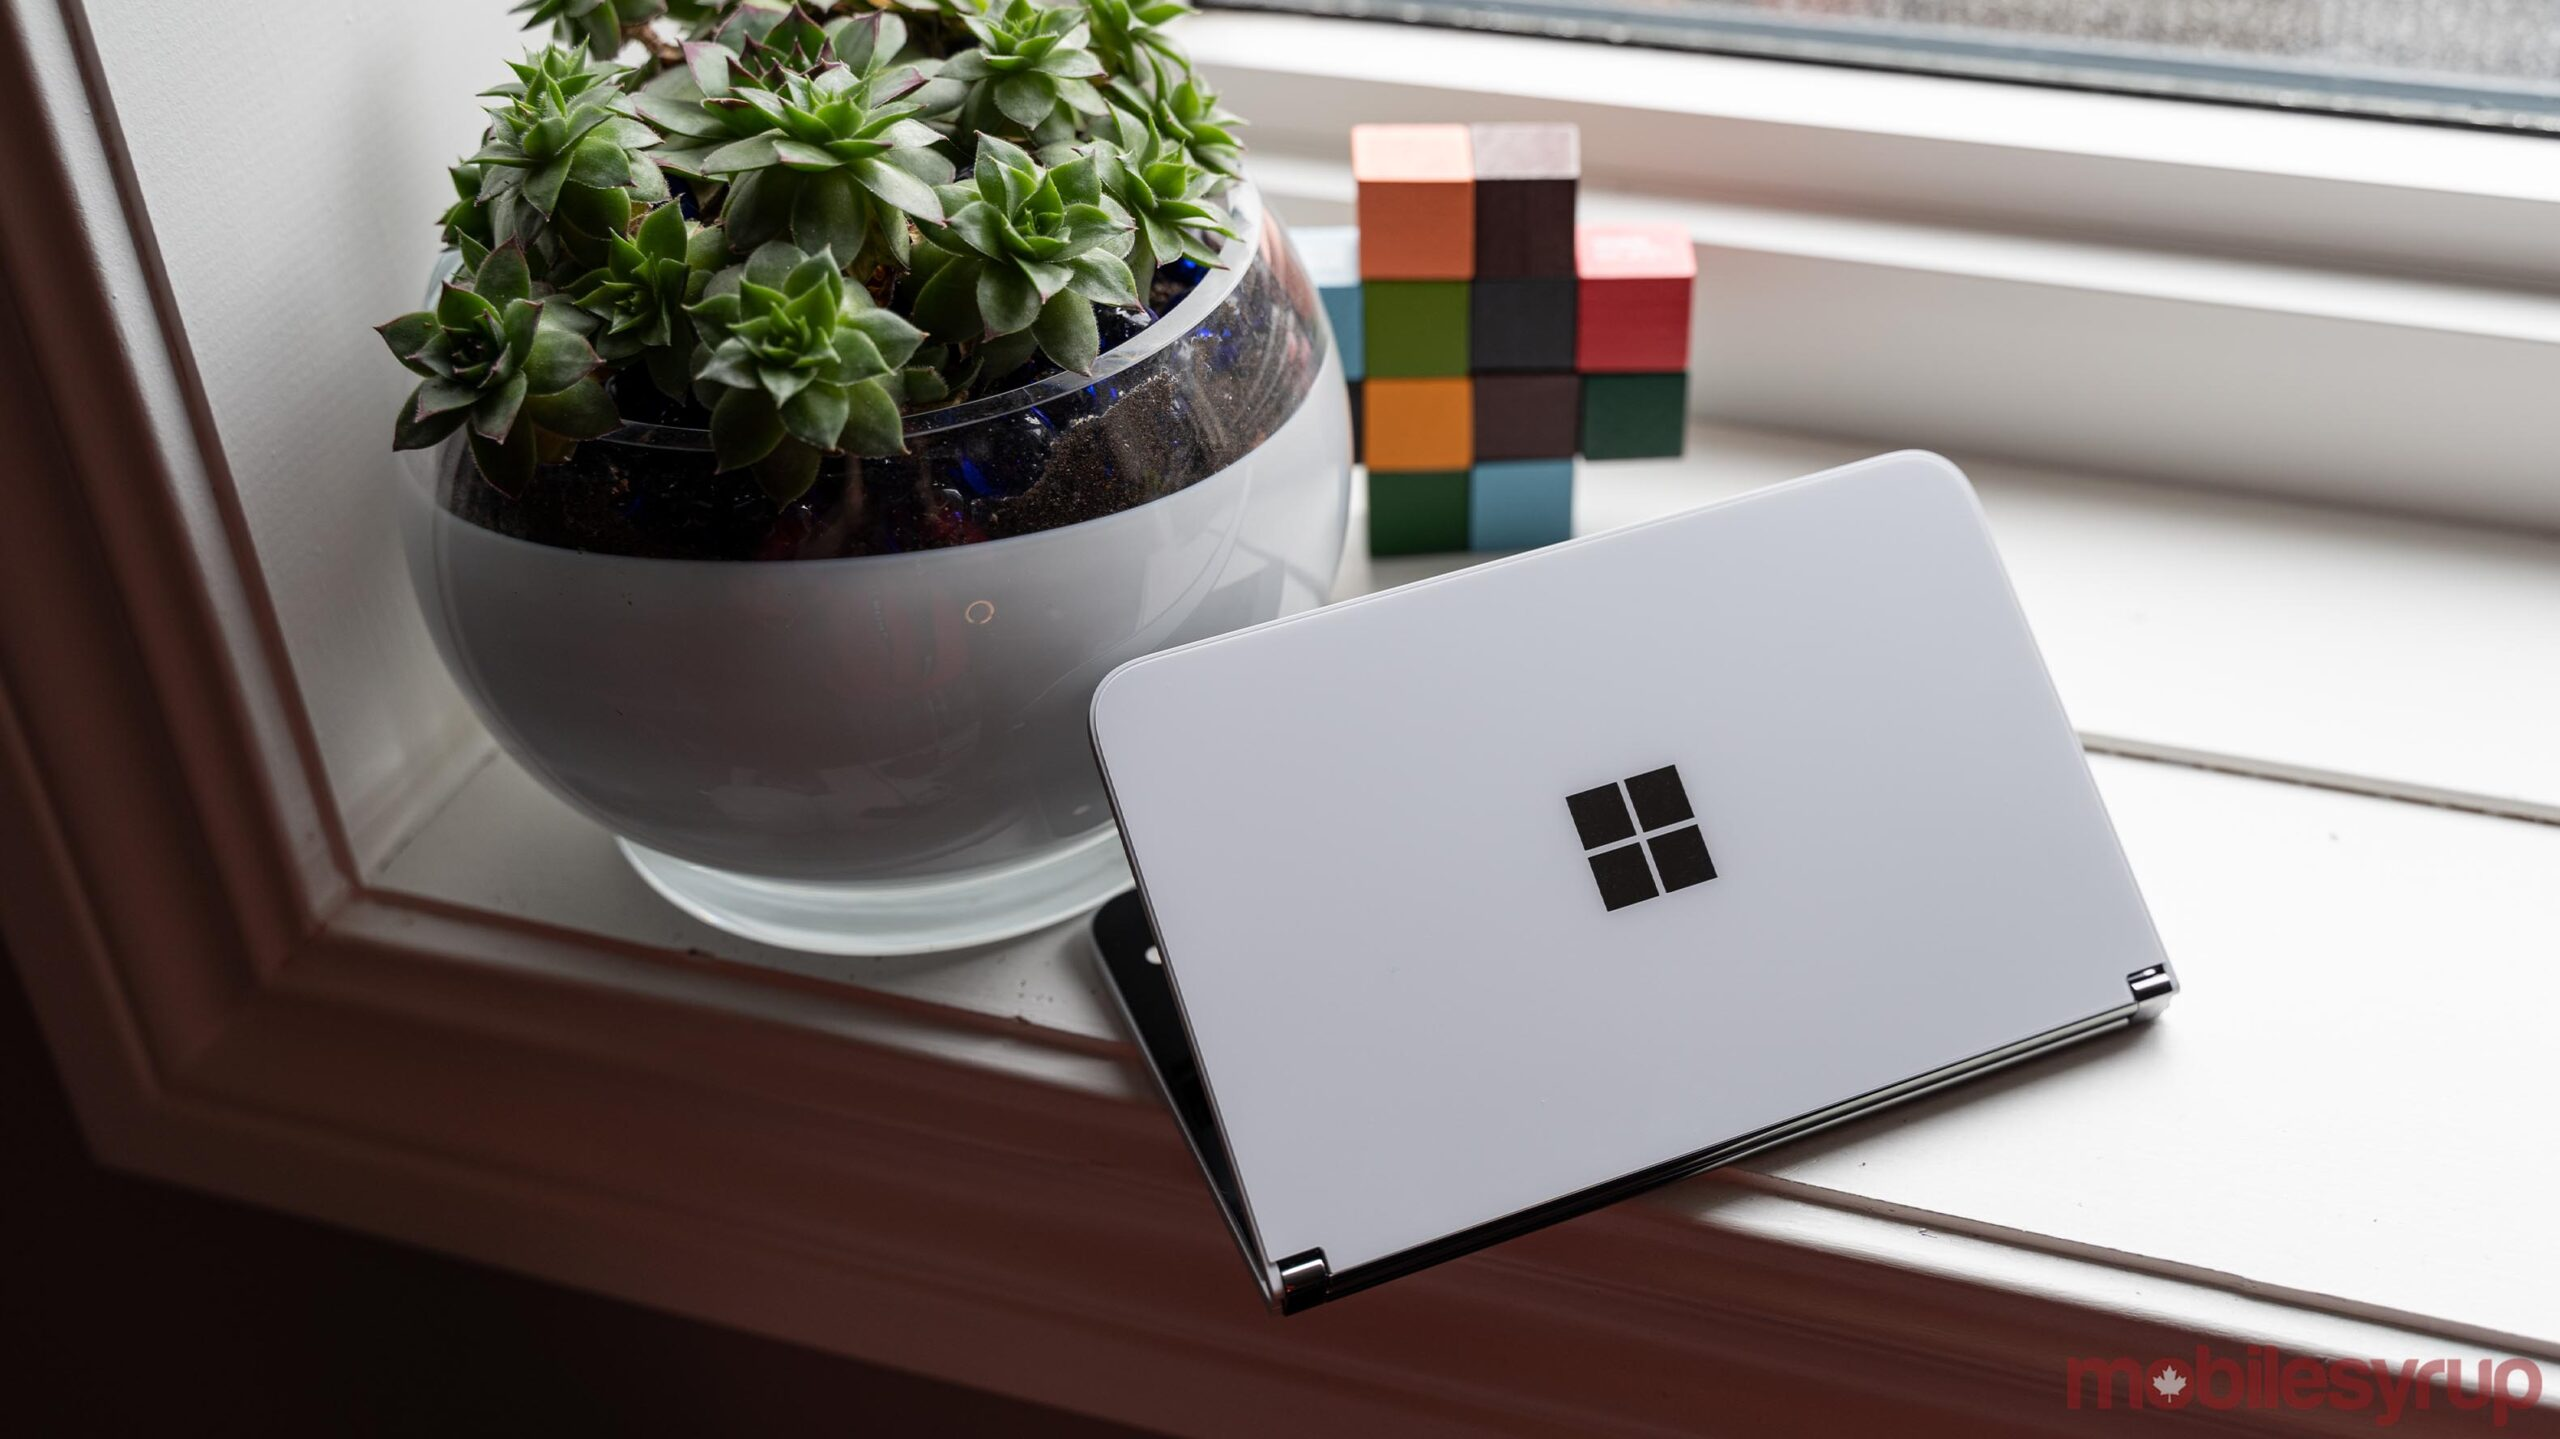 Microsoft Surface Duo partially folded